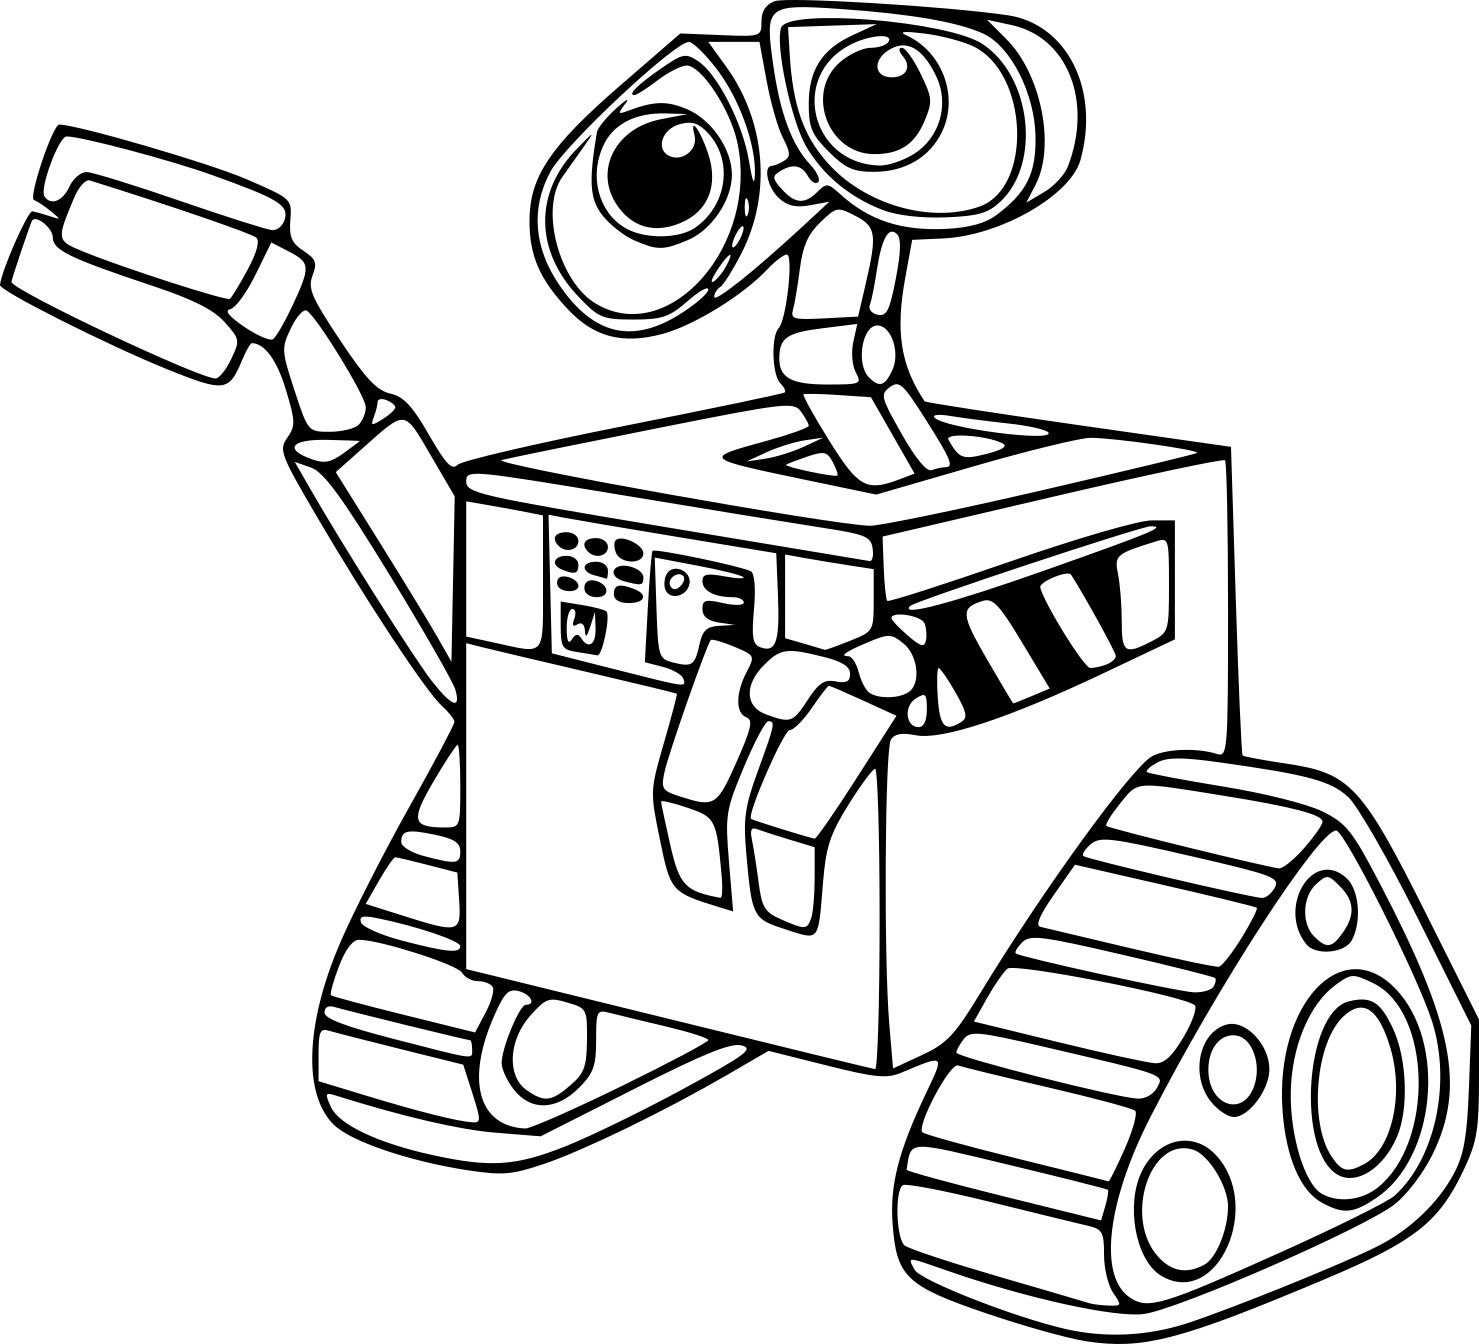 wall e coloring pages | Coloring Pages Of The Southern Colonies Map Sketch ...